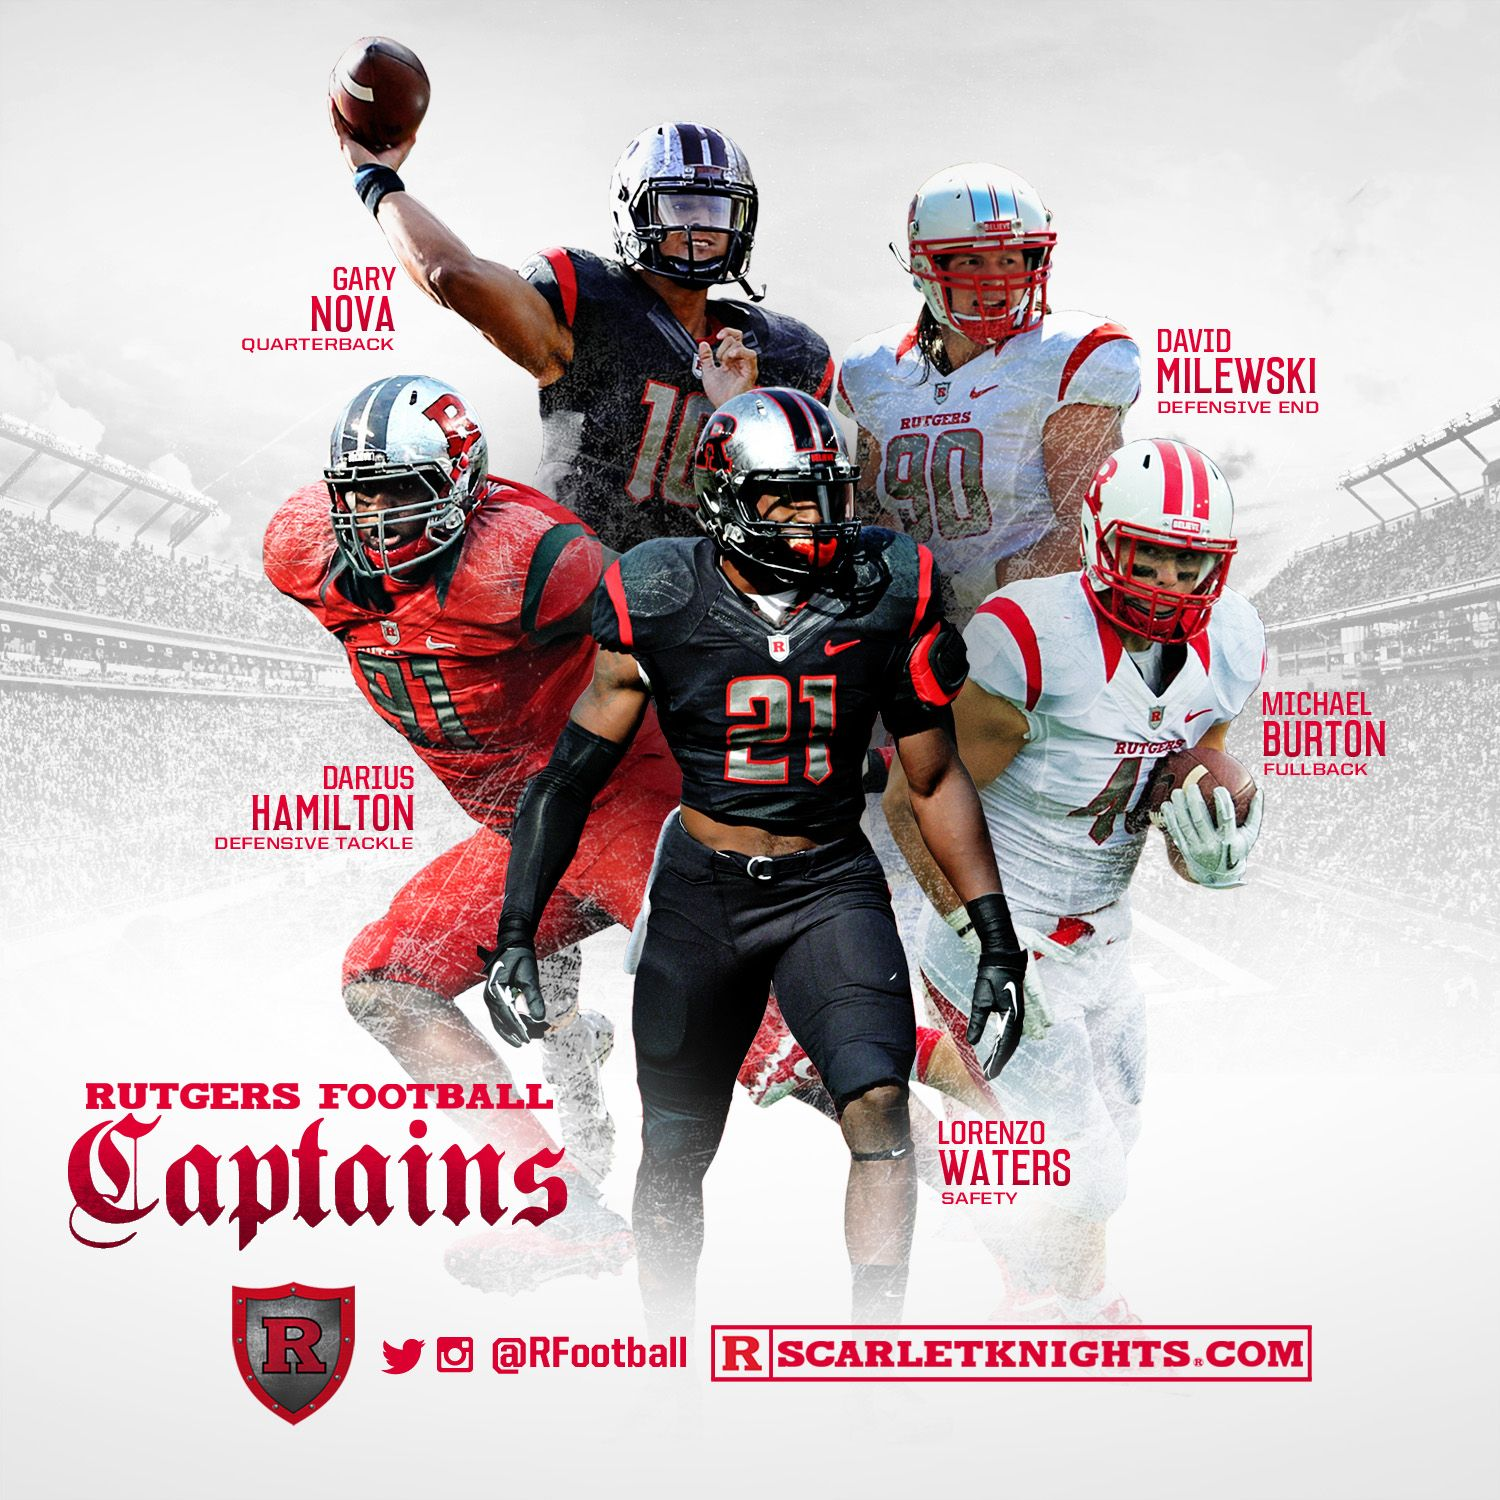 Your 2014 Rutgers Football Captains Thebirthplace Chopnation Rutgers Football Football Rutgers